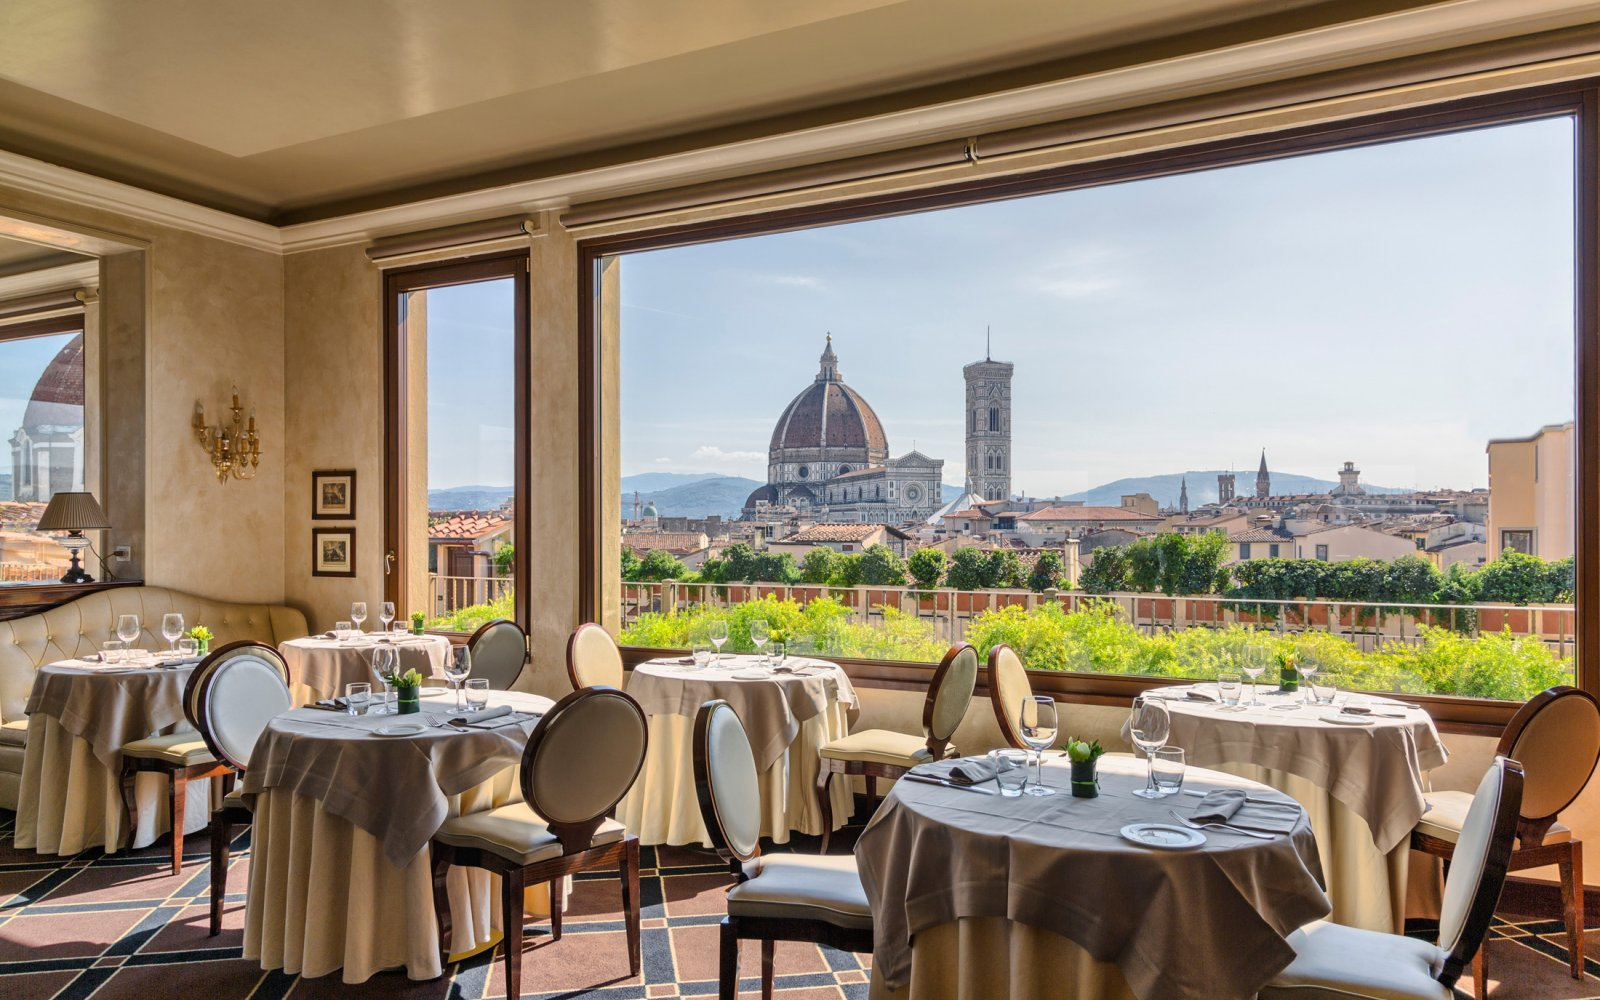 B Roof Grand Hotel Baglioni Firenze